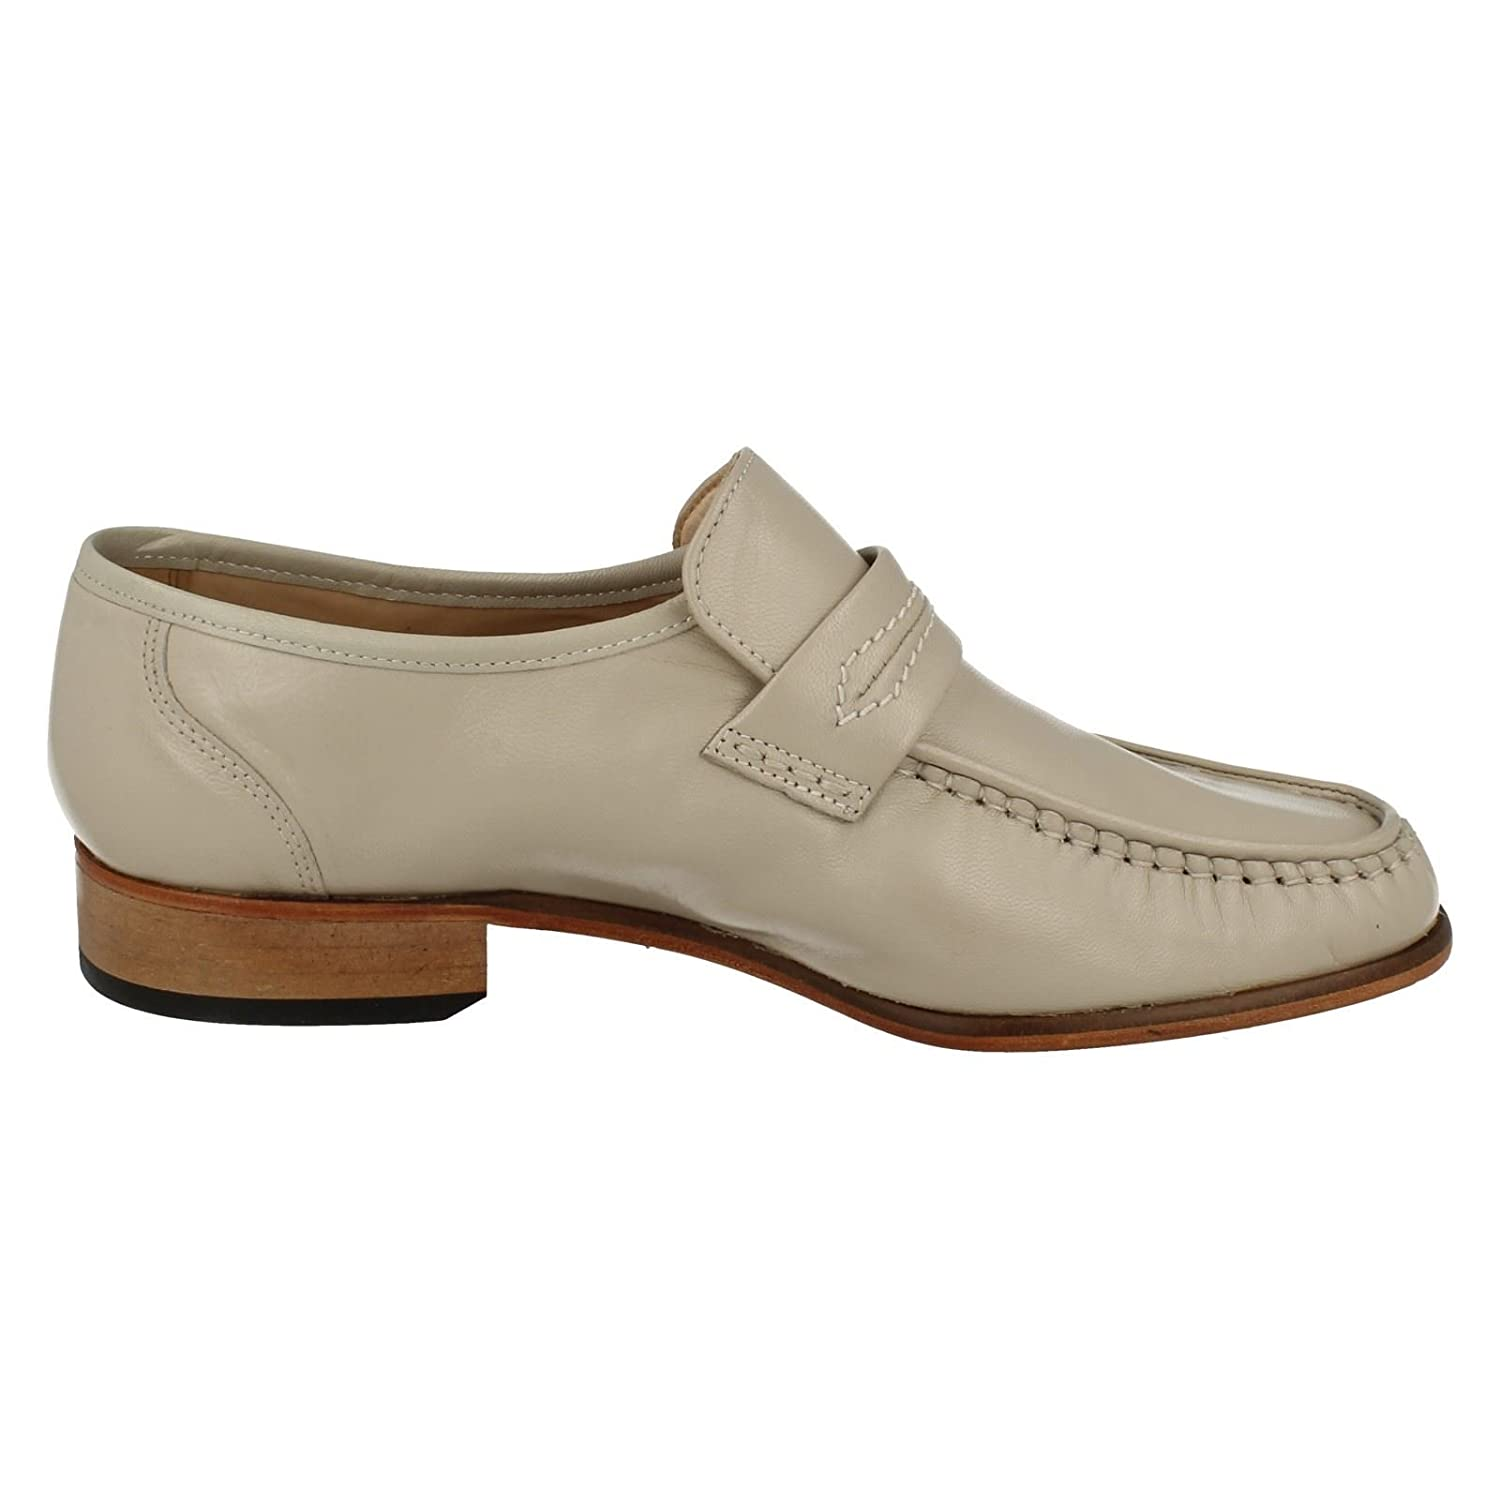 LEATHER IVORY WATFORD GRENSON MENS MOCCASIN G FITTING